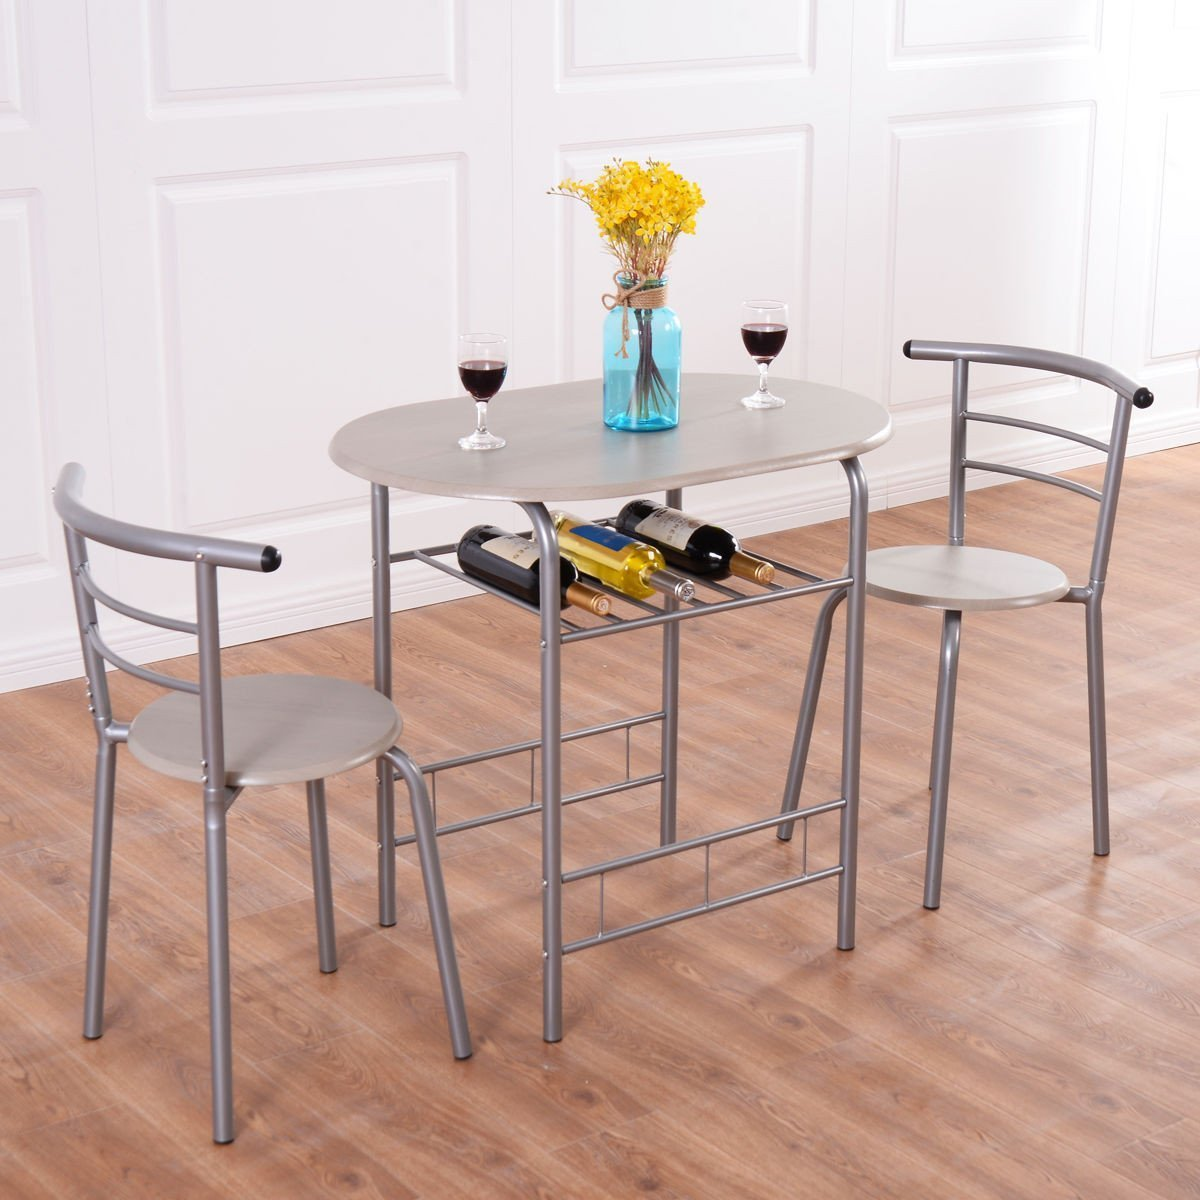 3 Piece Bistro Dining Table Set